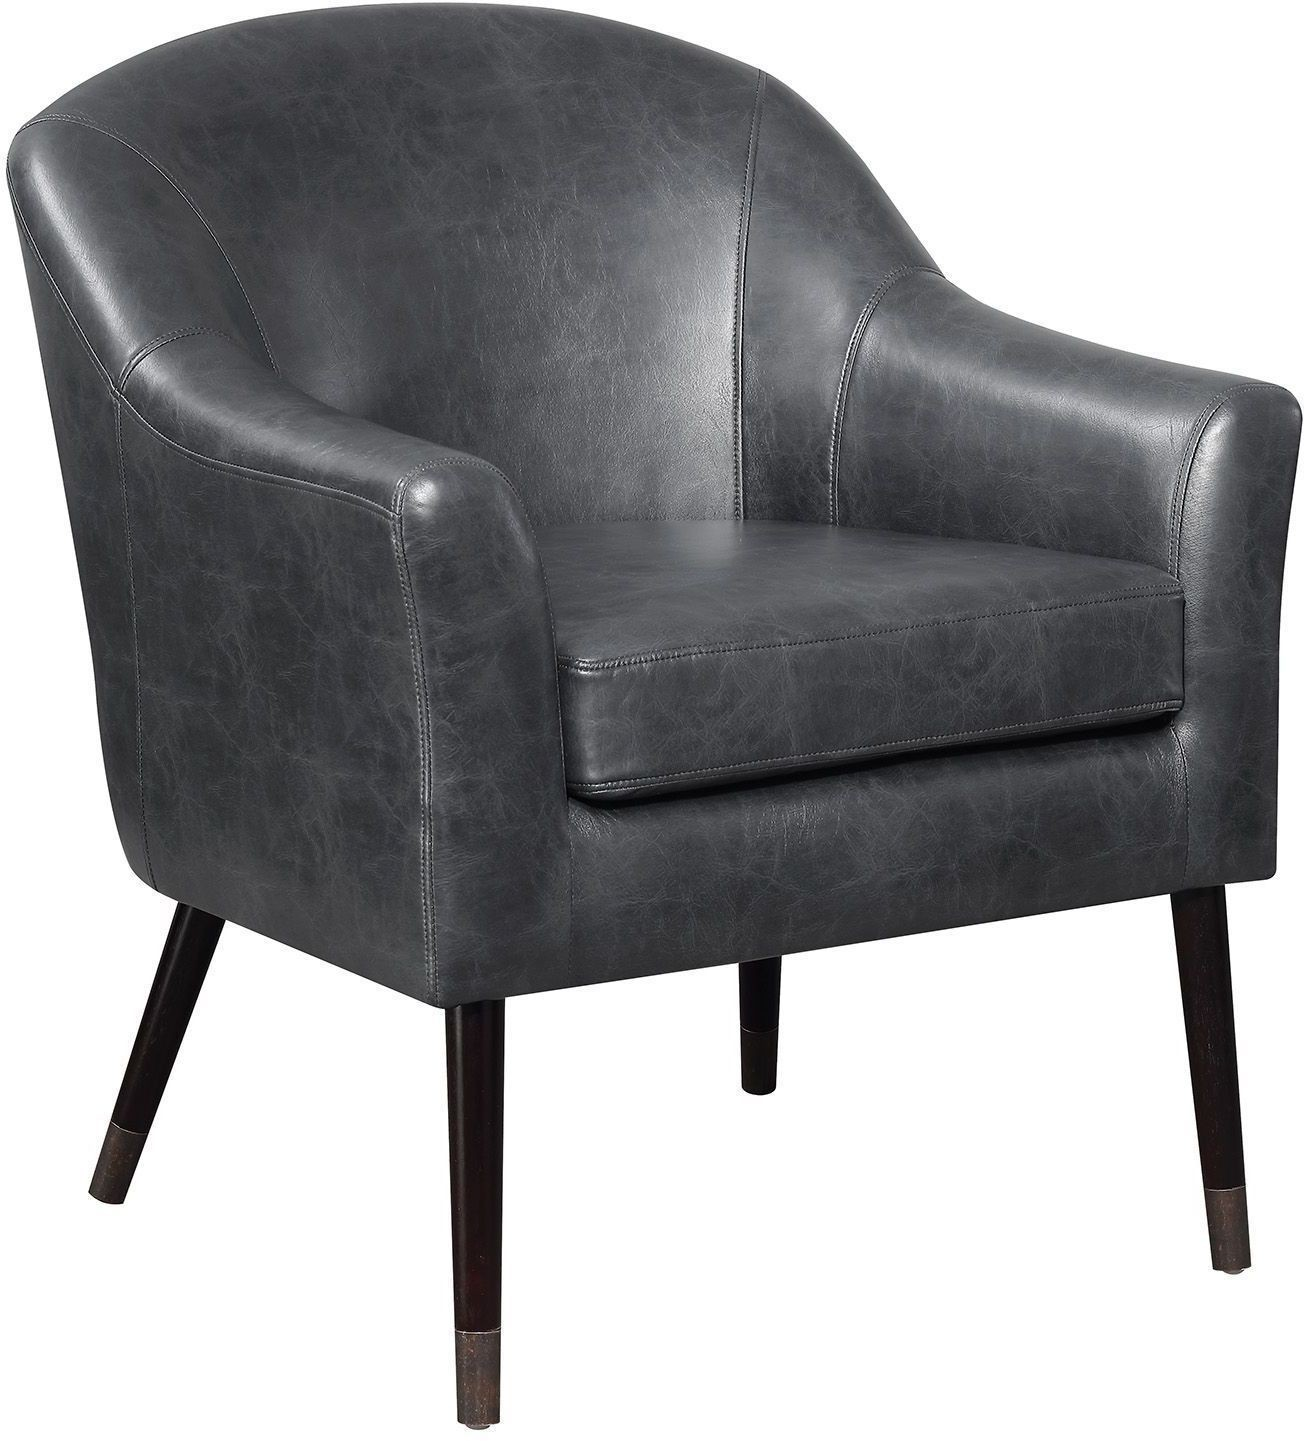 Black Accent Chair By Scott Living From Coaster Coleman